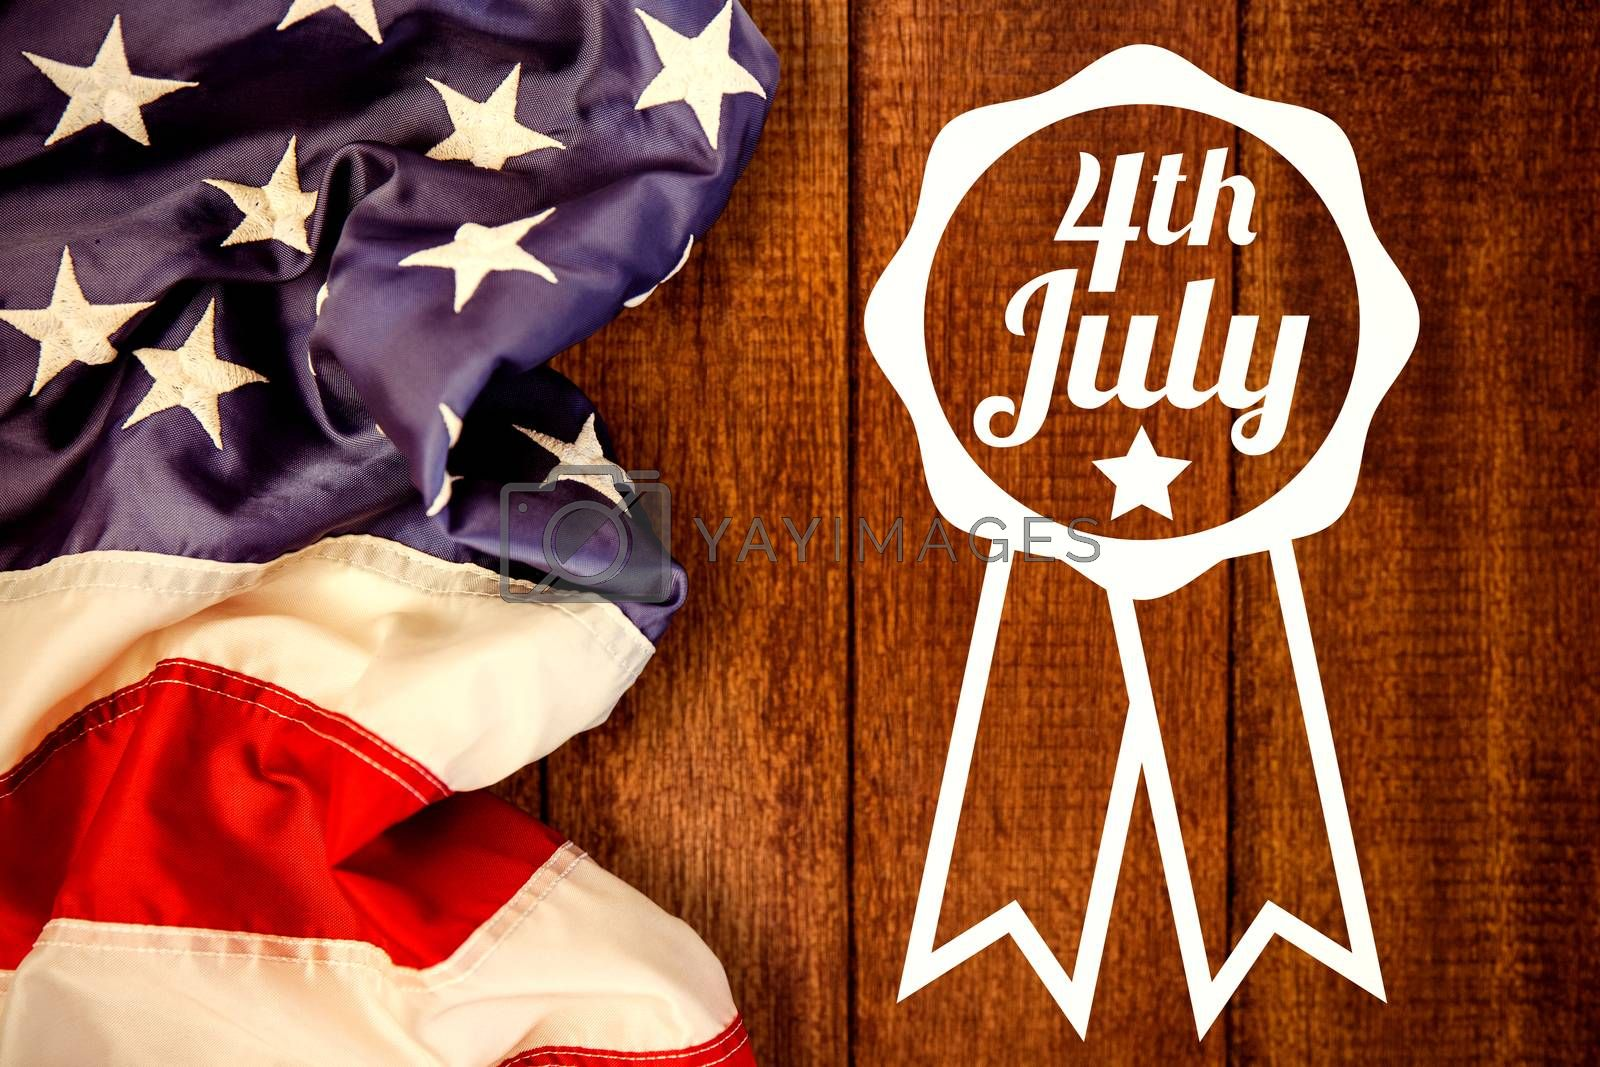 Close up of badge with 4th July text  against wooden background